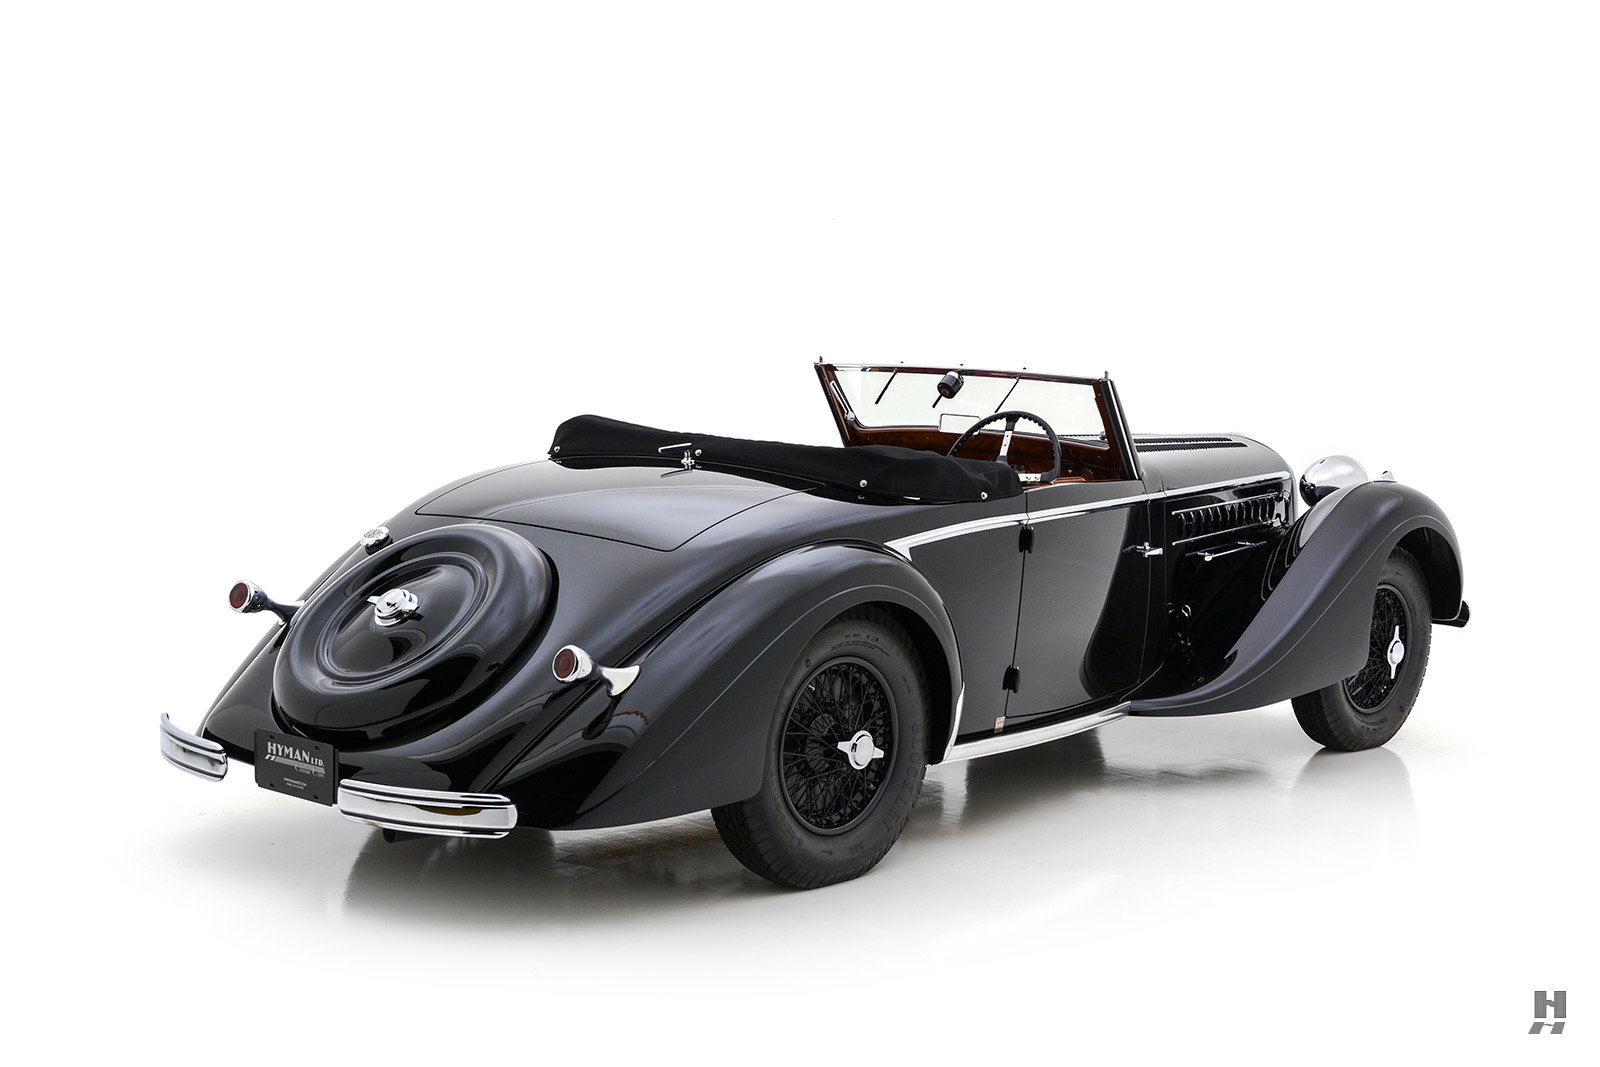 1937 DELAHAYE 135 COUPE DES ALPES For Sale (picture 5 of 6)